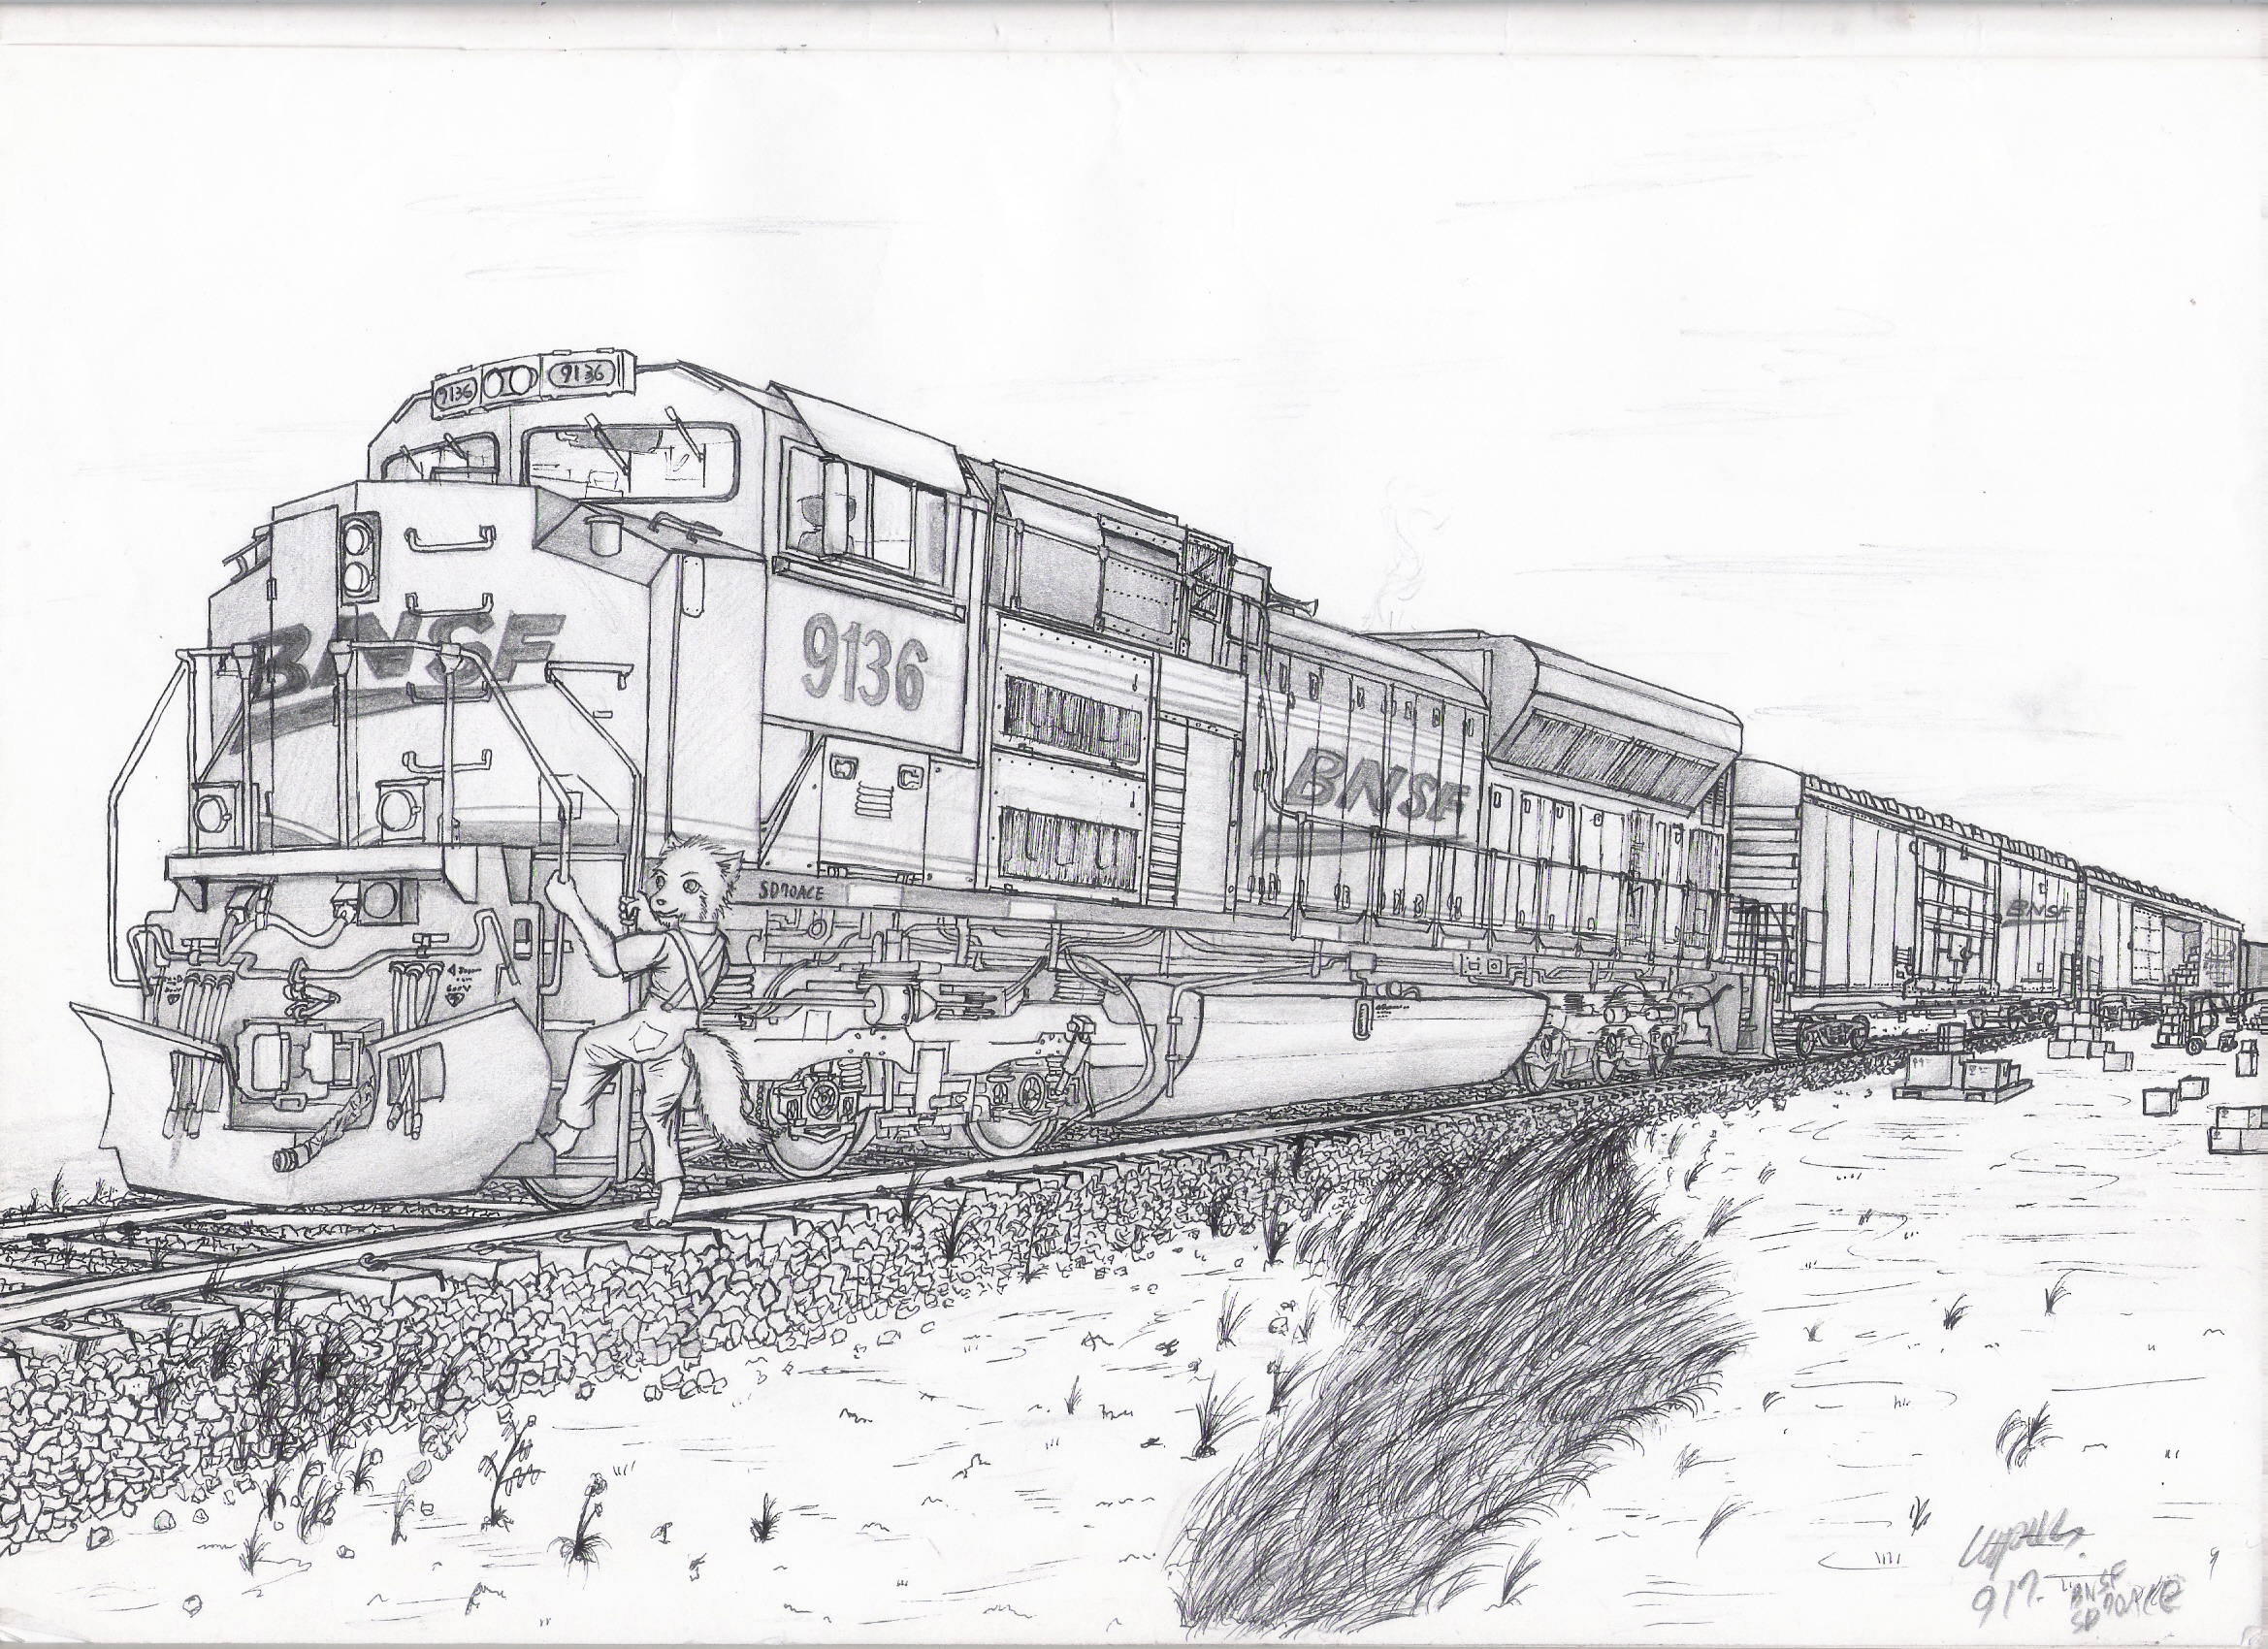 Bnsf 9136 emd sd70ace by orang111 on deviantart for Amtrak coloring pages